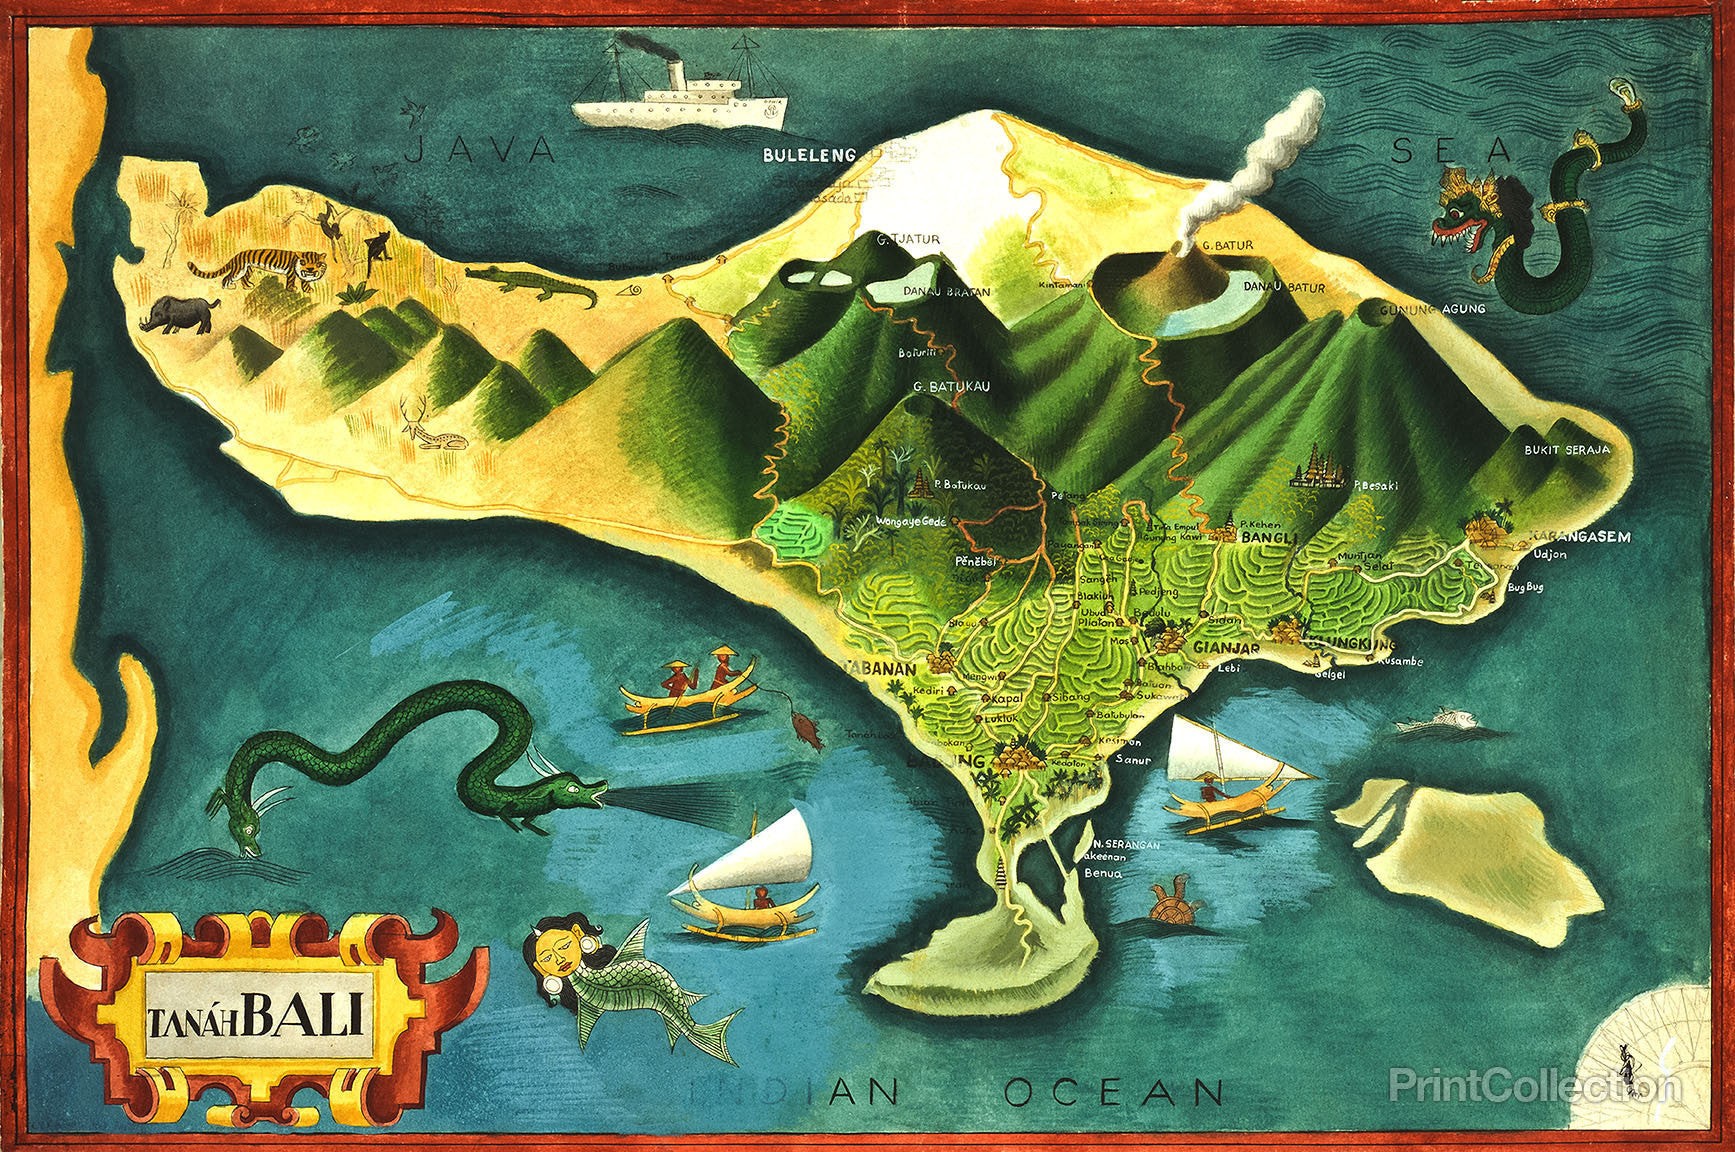 Print Collection Map Of Bali